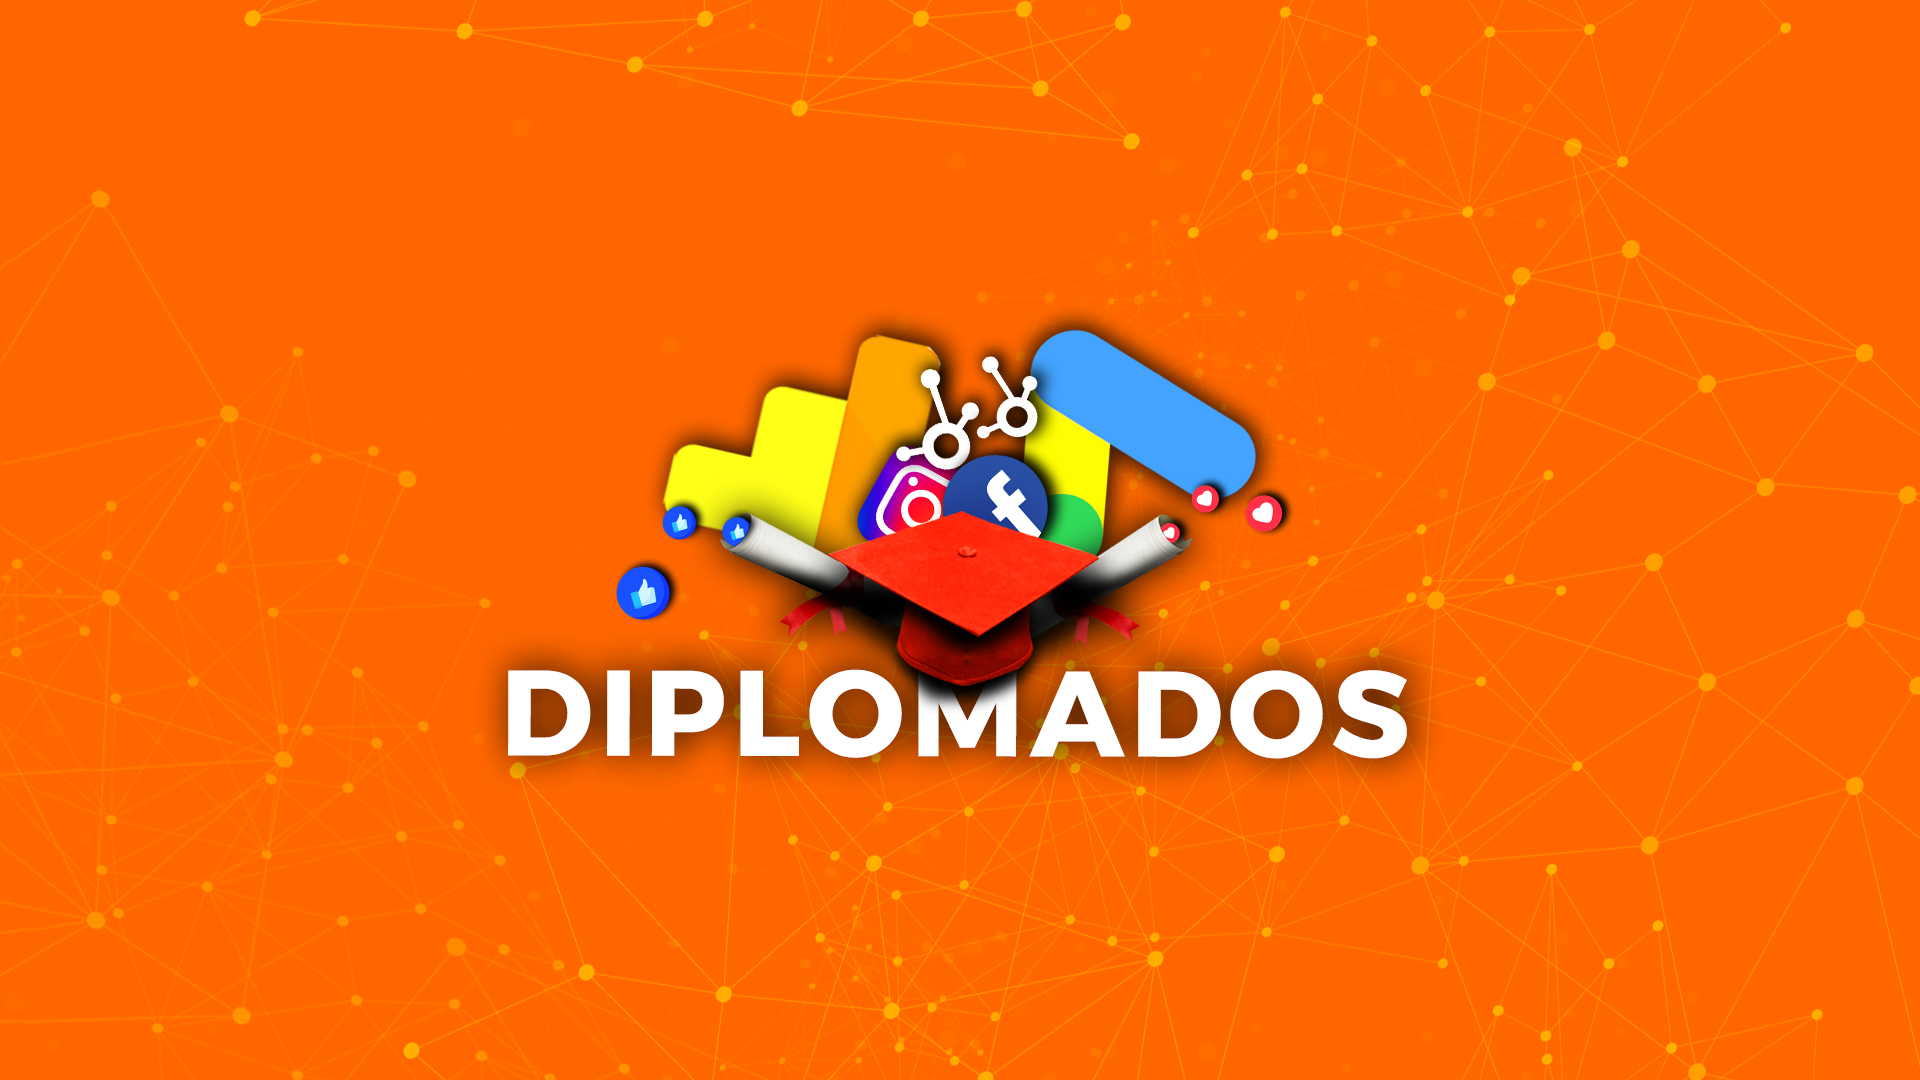 diplomados escuela-marketing-digital-oferta-academica-diplomados